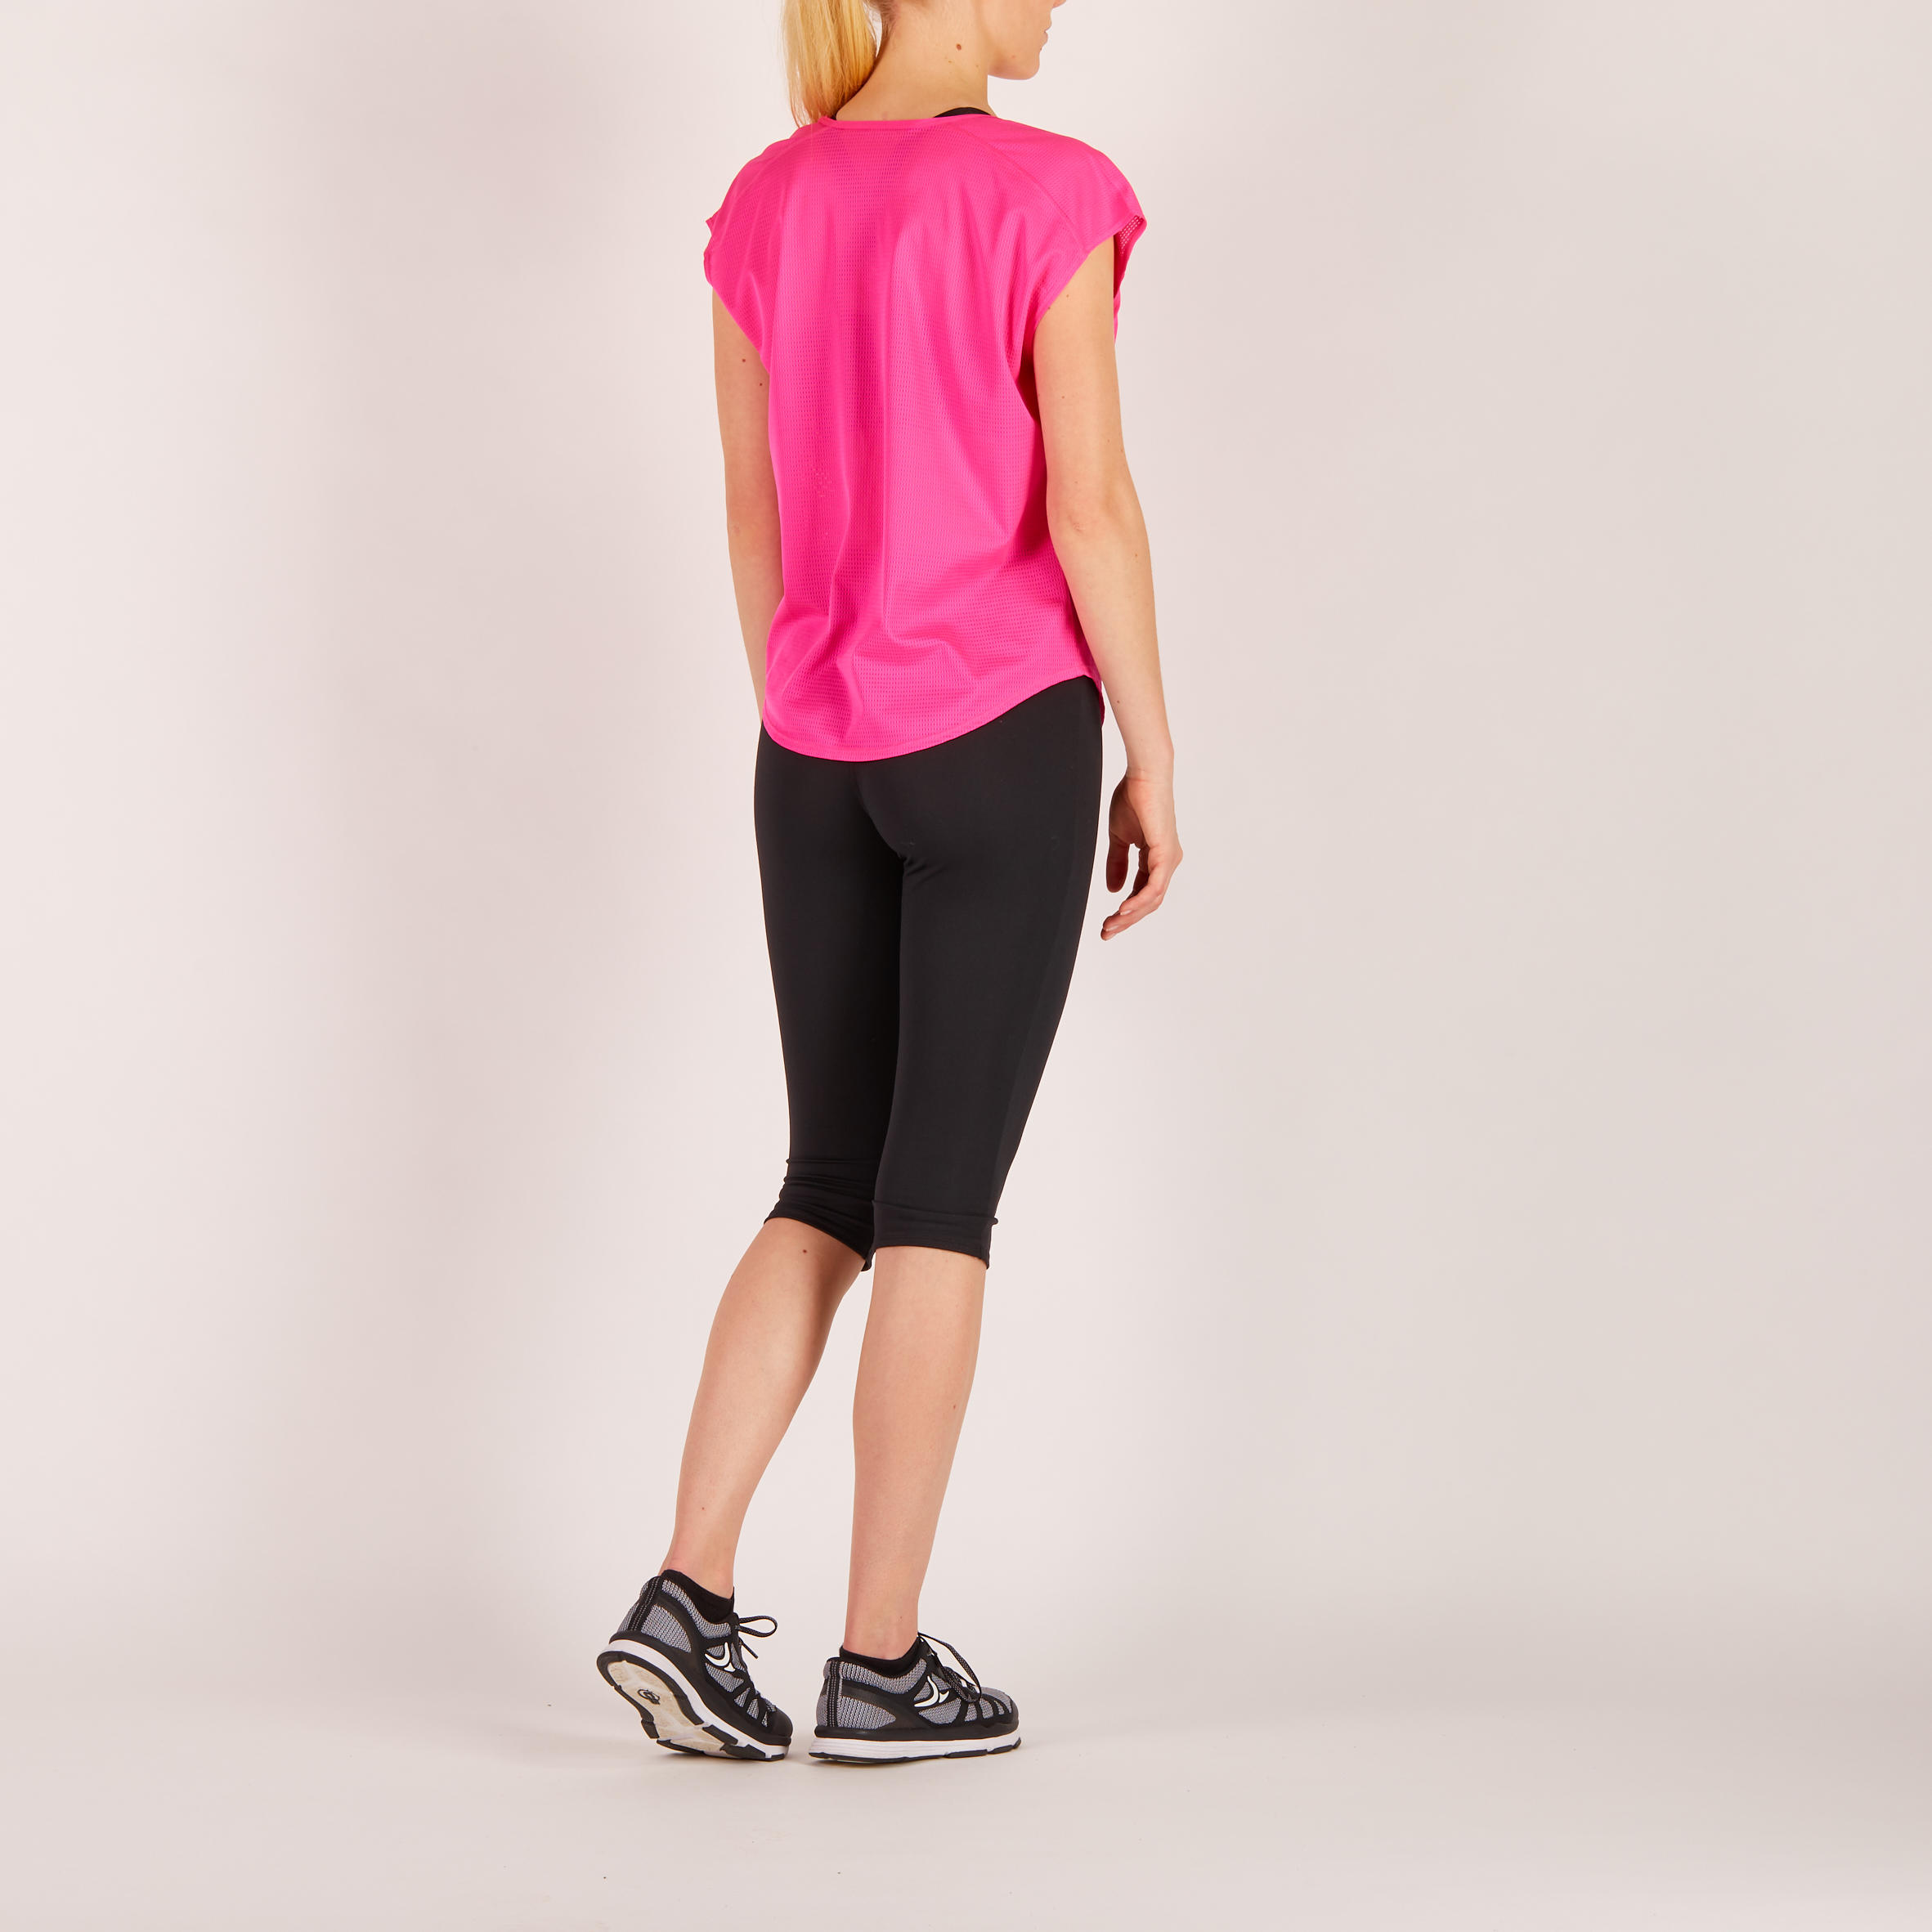 120 Women's Loose-Fit Cardio Fitness T-Shirt - Pink Print